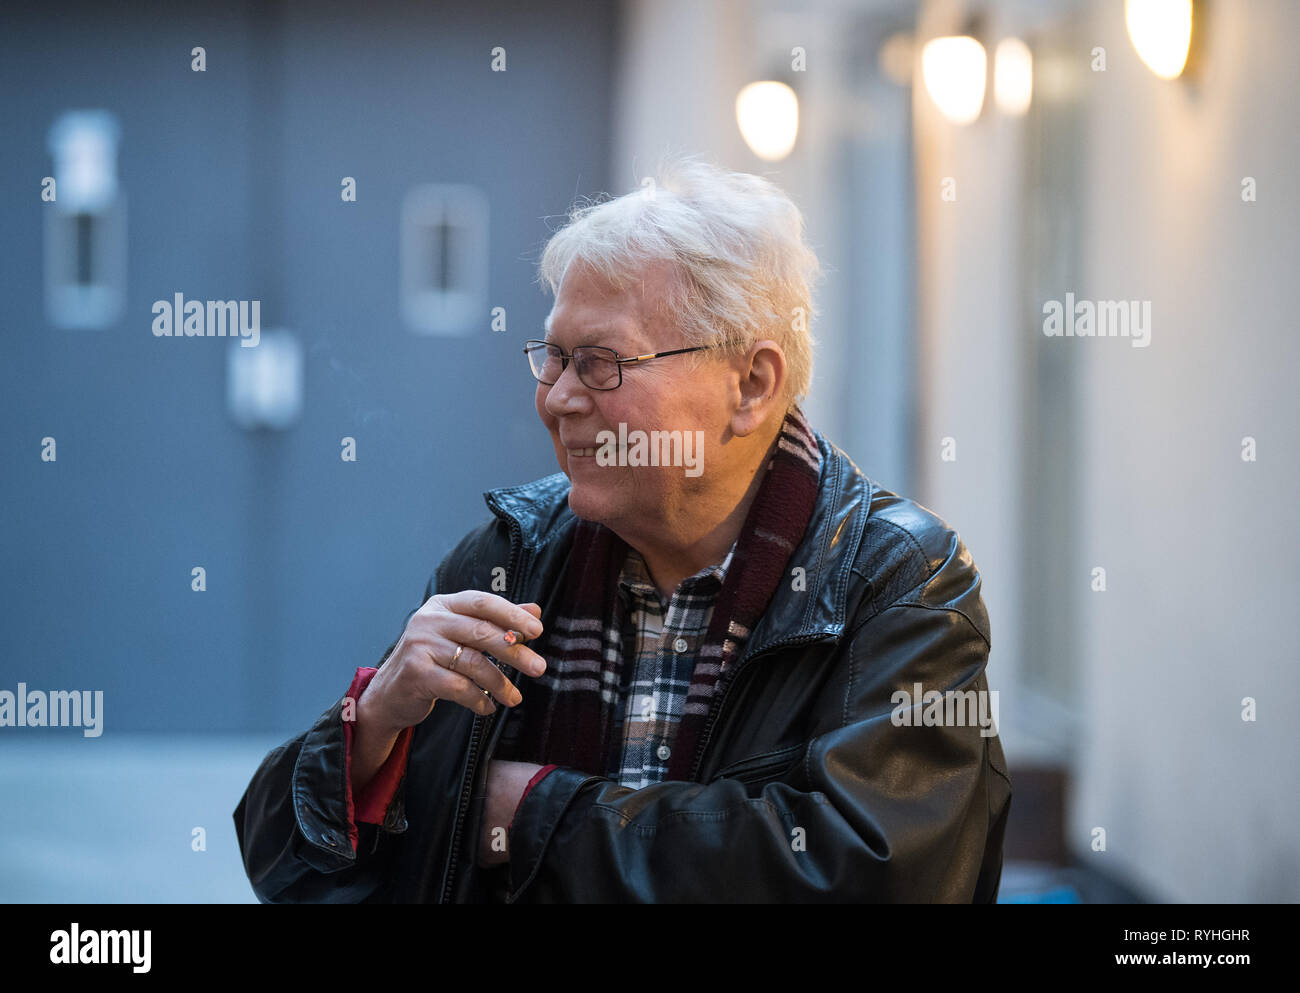 Berlin, Germany. 13th Mar, 2019. Director Harry Kupfer smokes during the break of the photo rehearsal of Handel's opera 'Poros' in a courtyard of the Komische Oper. Premiere of the piece is on 16.03.2019. Credit: Soeren Stache/dpa/Alamy Live News - Stock Image